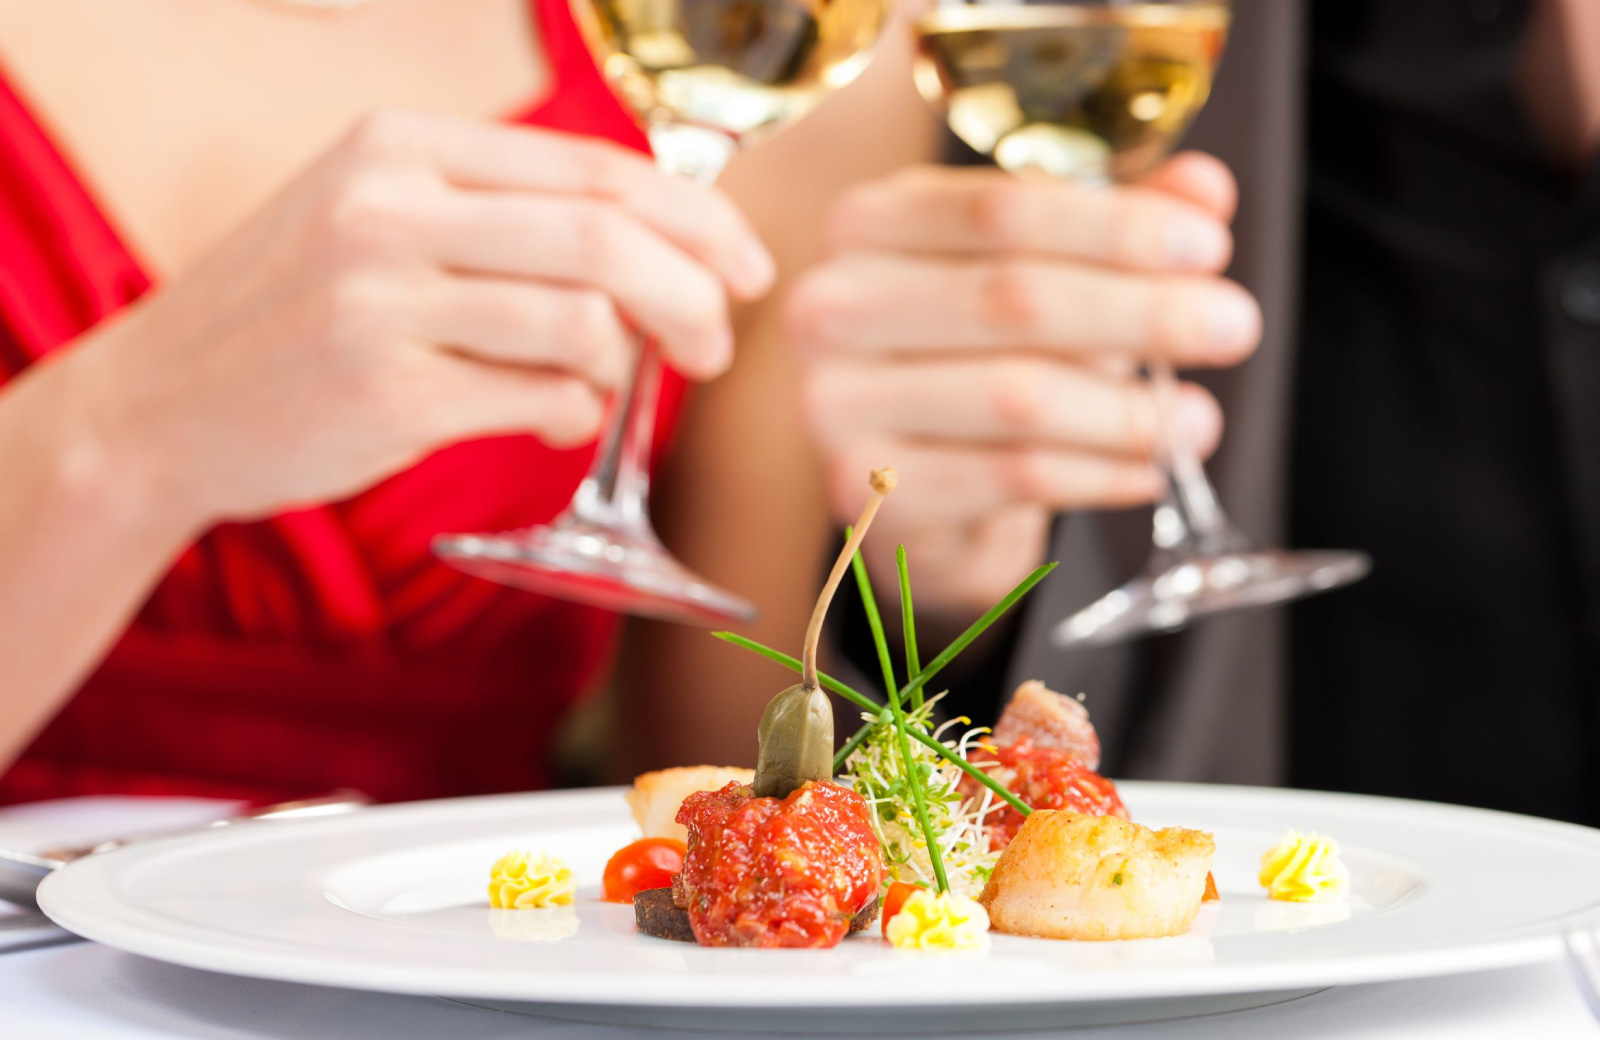 hands of a woman in a red dress eating a tiny plate of food with 2 scallops - The Waypointe